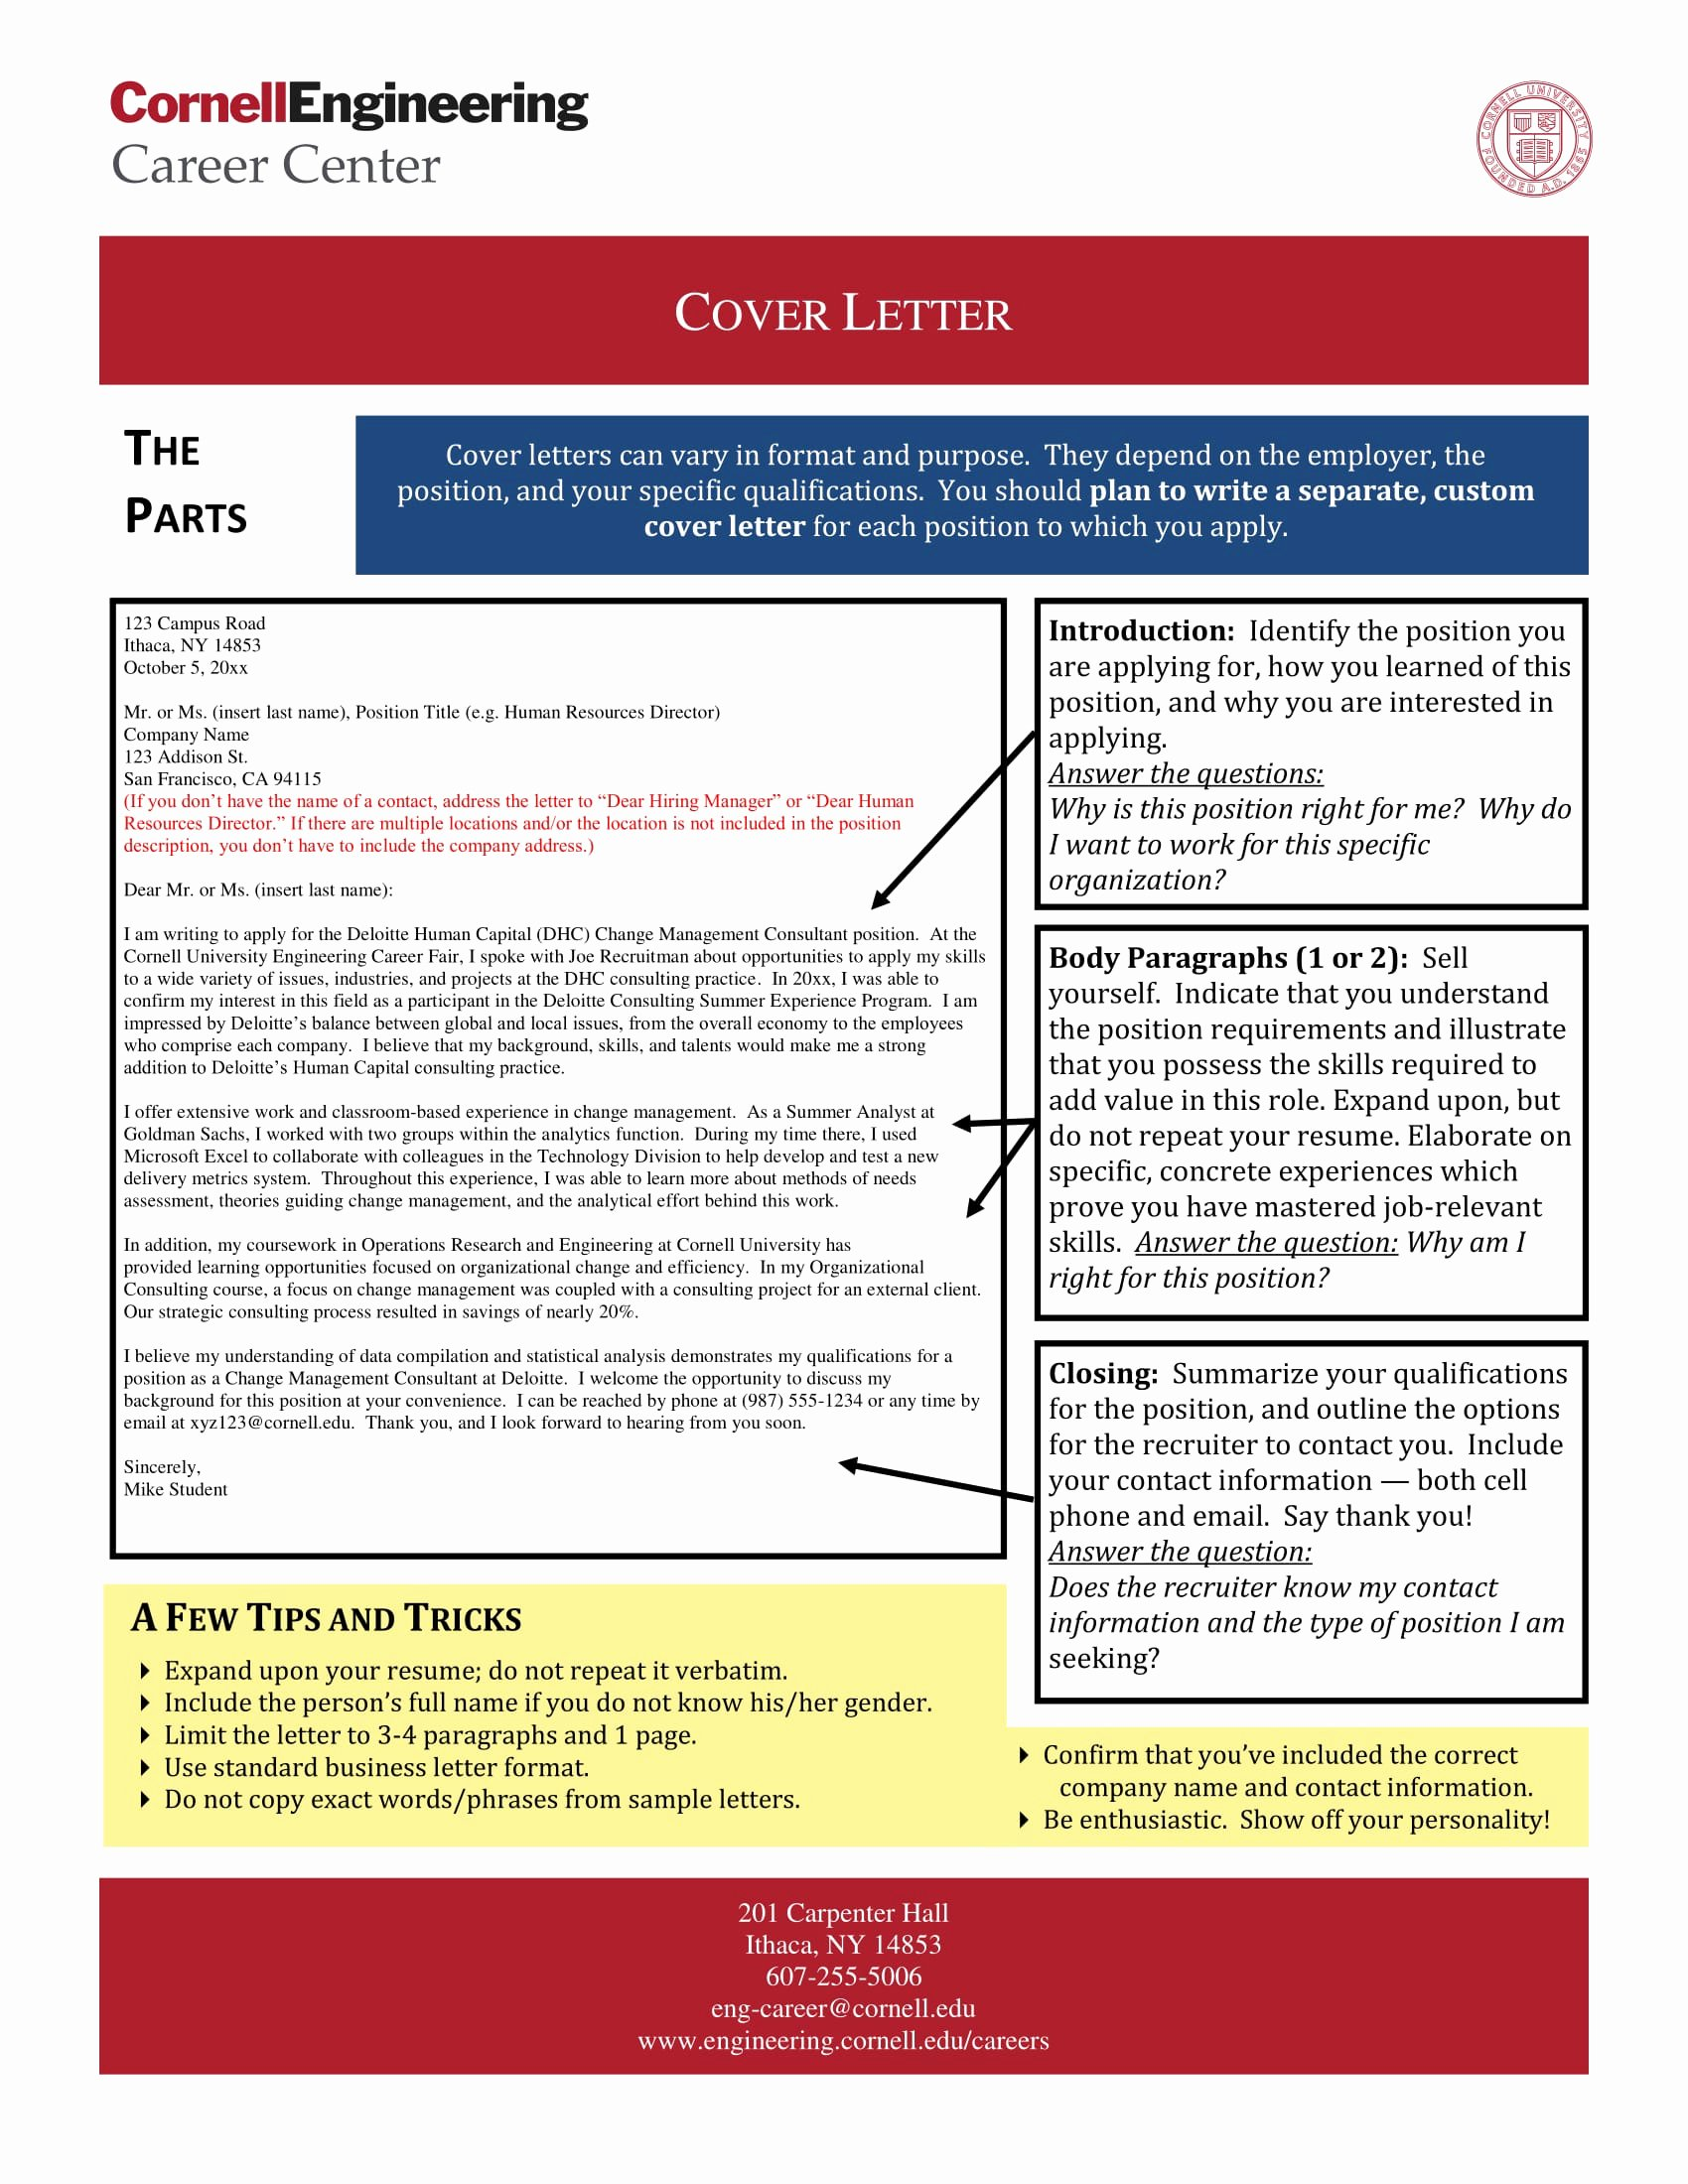 Cover Letter for Employment Unique 32 Best Sample Cover Letter Examples for Job Applicants